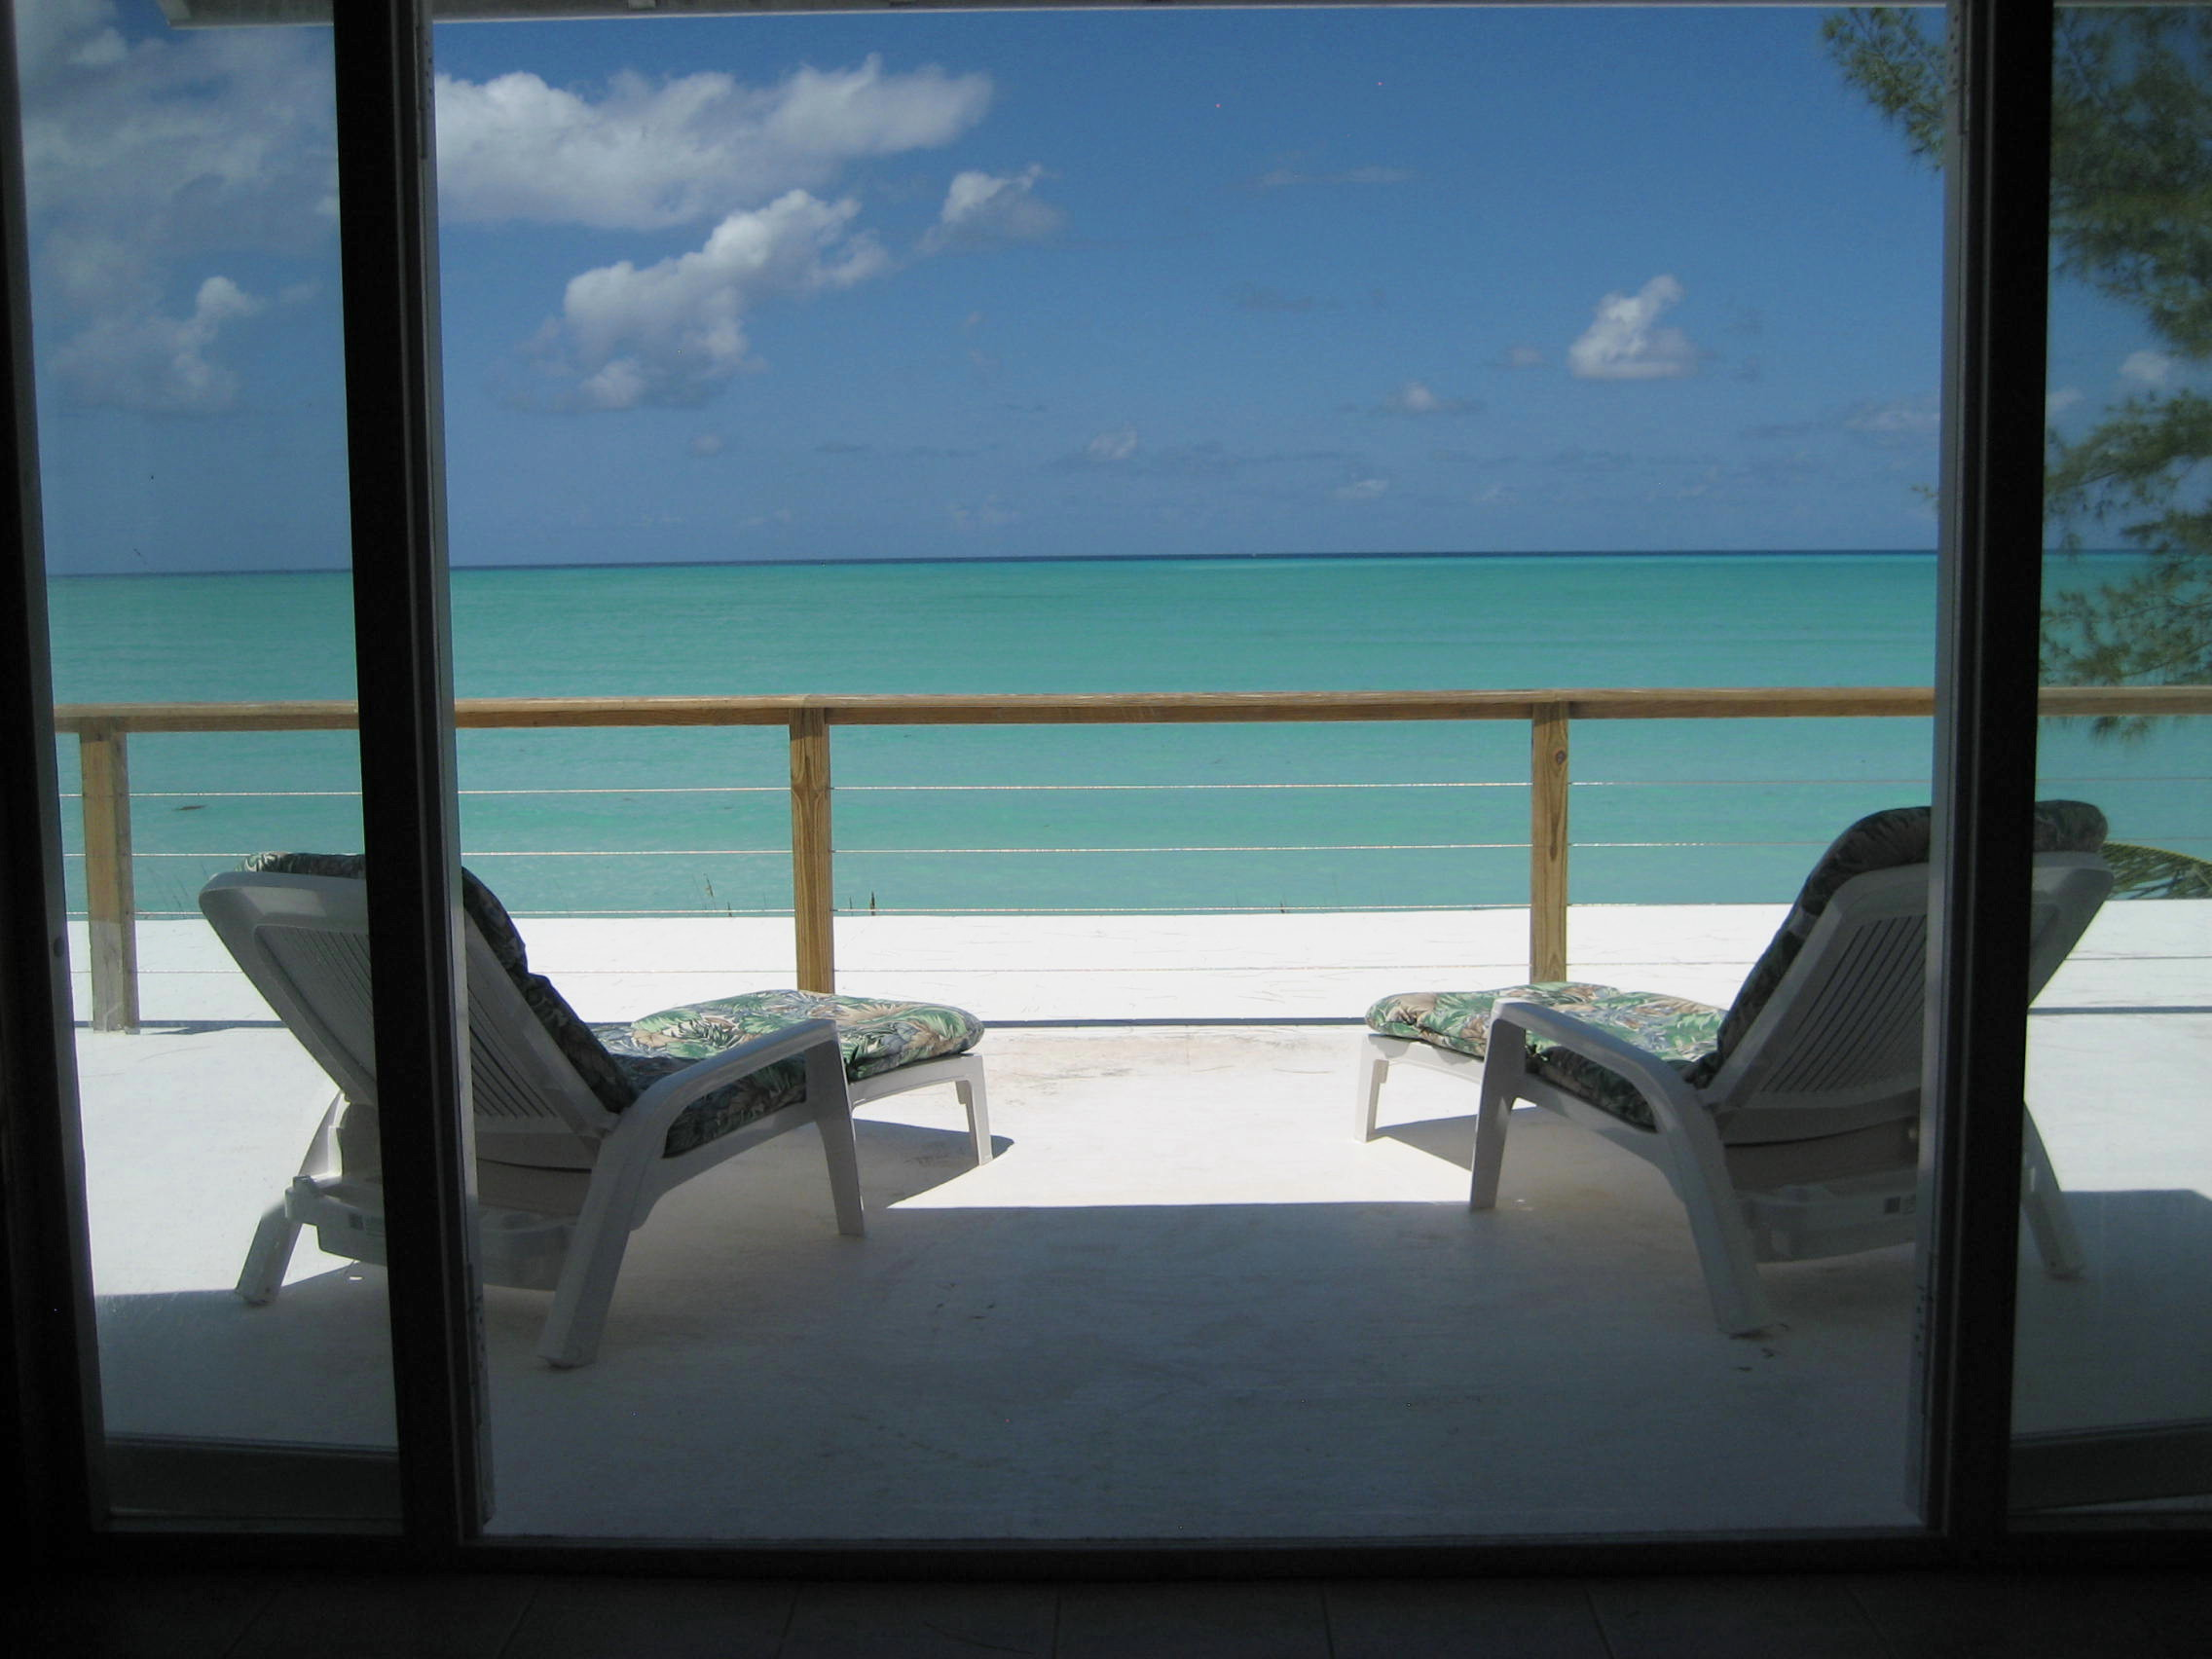 Pictures of houses on the beach - Beach House Spanish Wells Bahamas